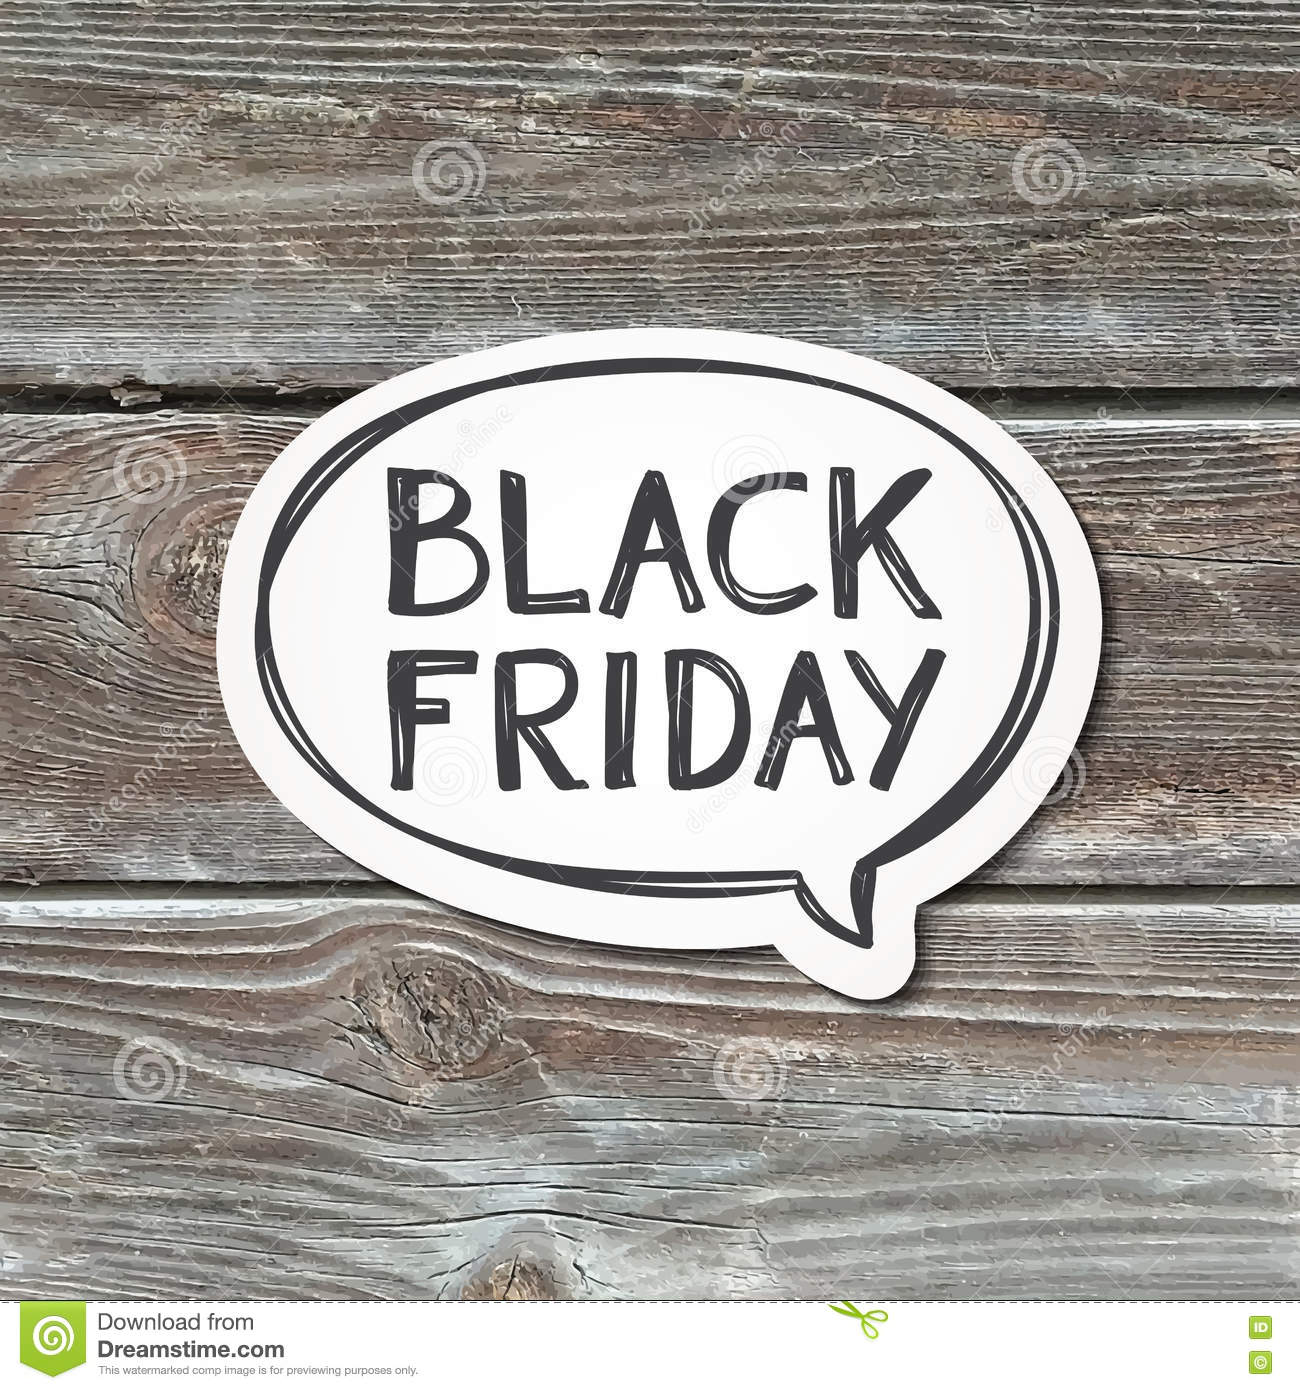 Black Friday Lettering Wood Texture Stock Vector Image